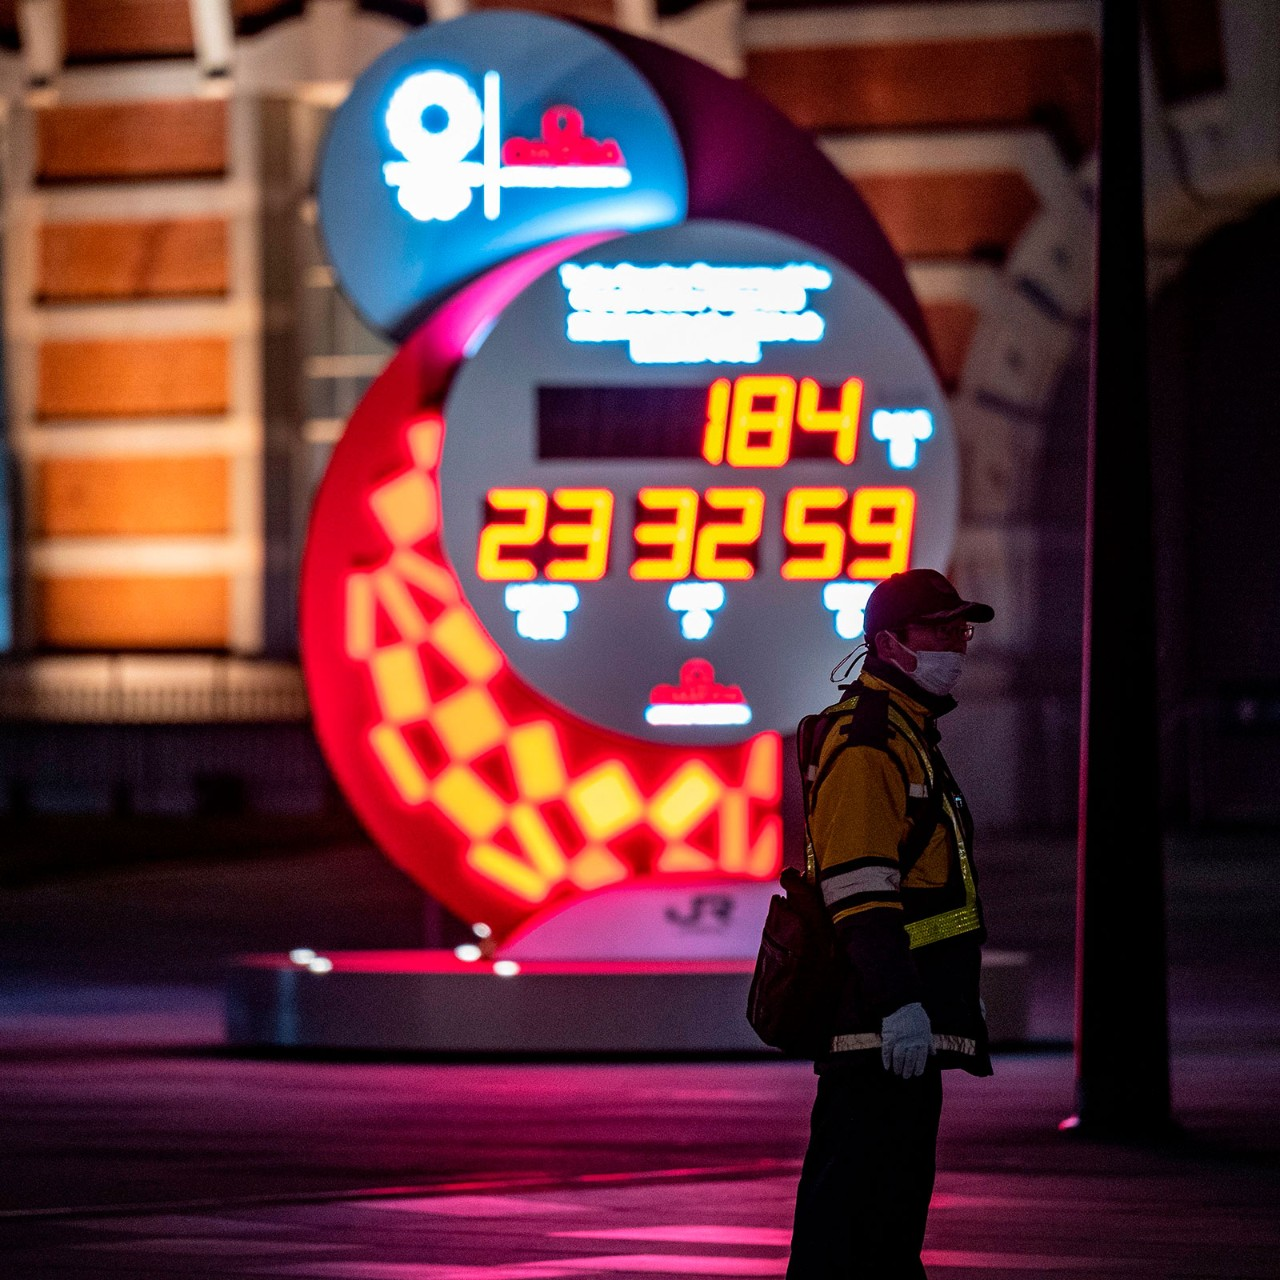 Too optimistic? A clock at Tokyo railway station counts down to the postponed 2020 Olympic and Paralympic Games as fears grow that the July event will be called off